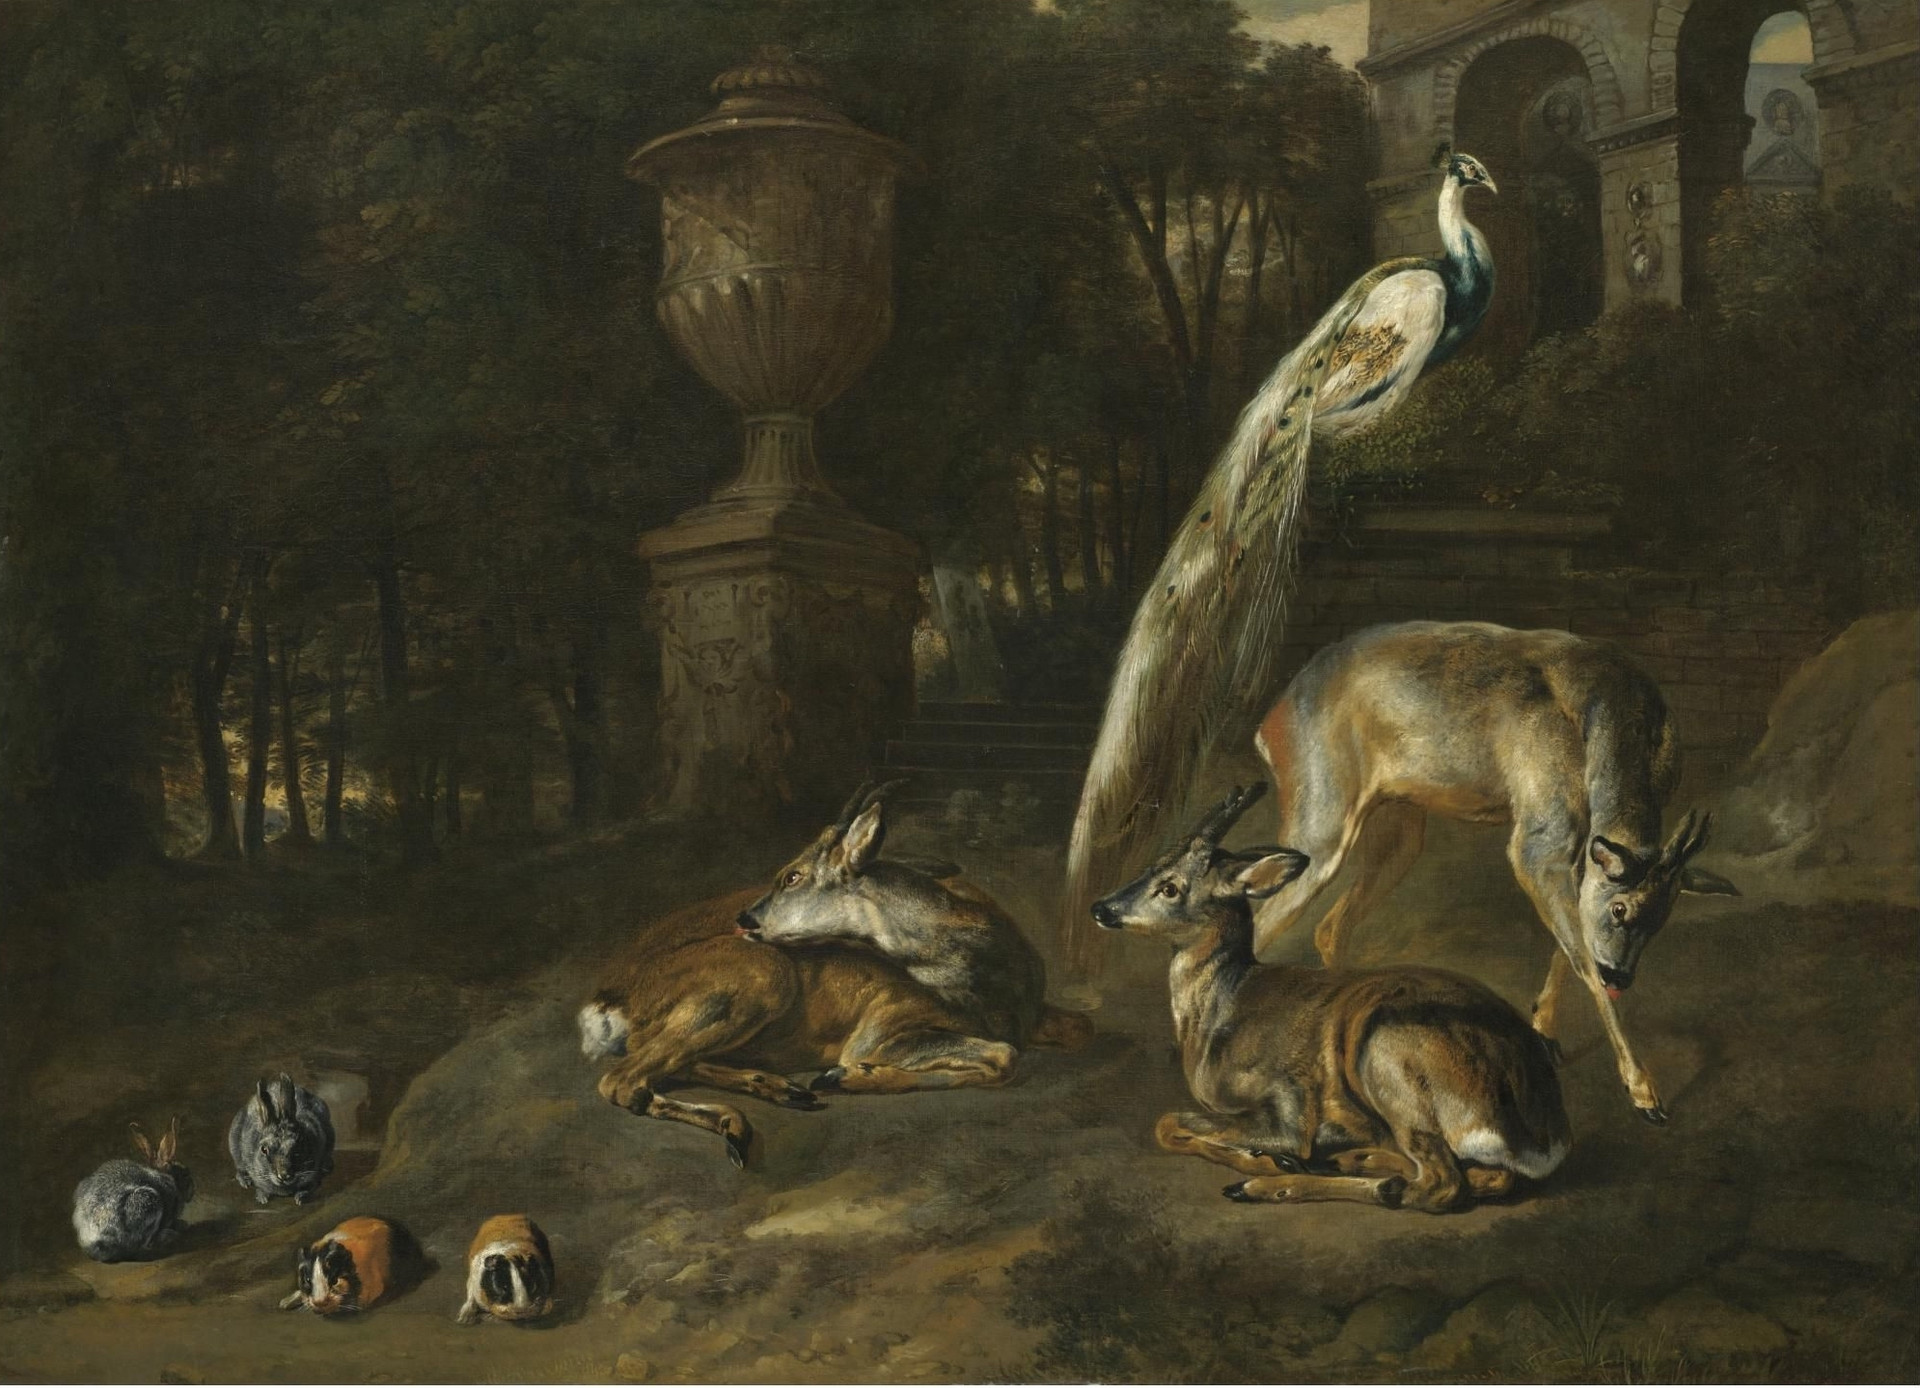 Rabbits, Guinea-Pigs, Roe-Deer and a Peacock in an Ornamental Garden